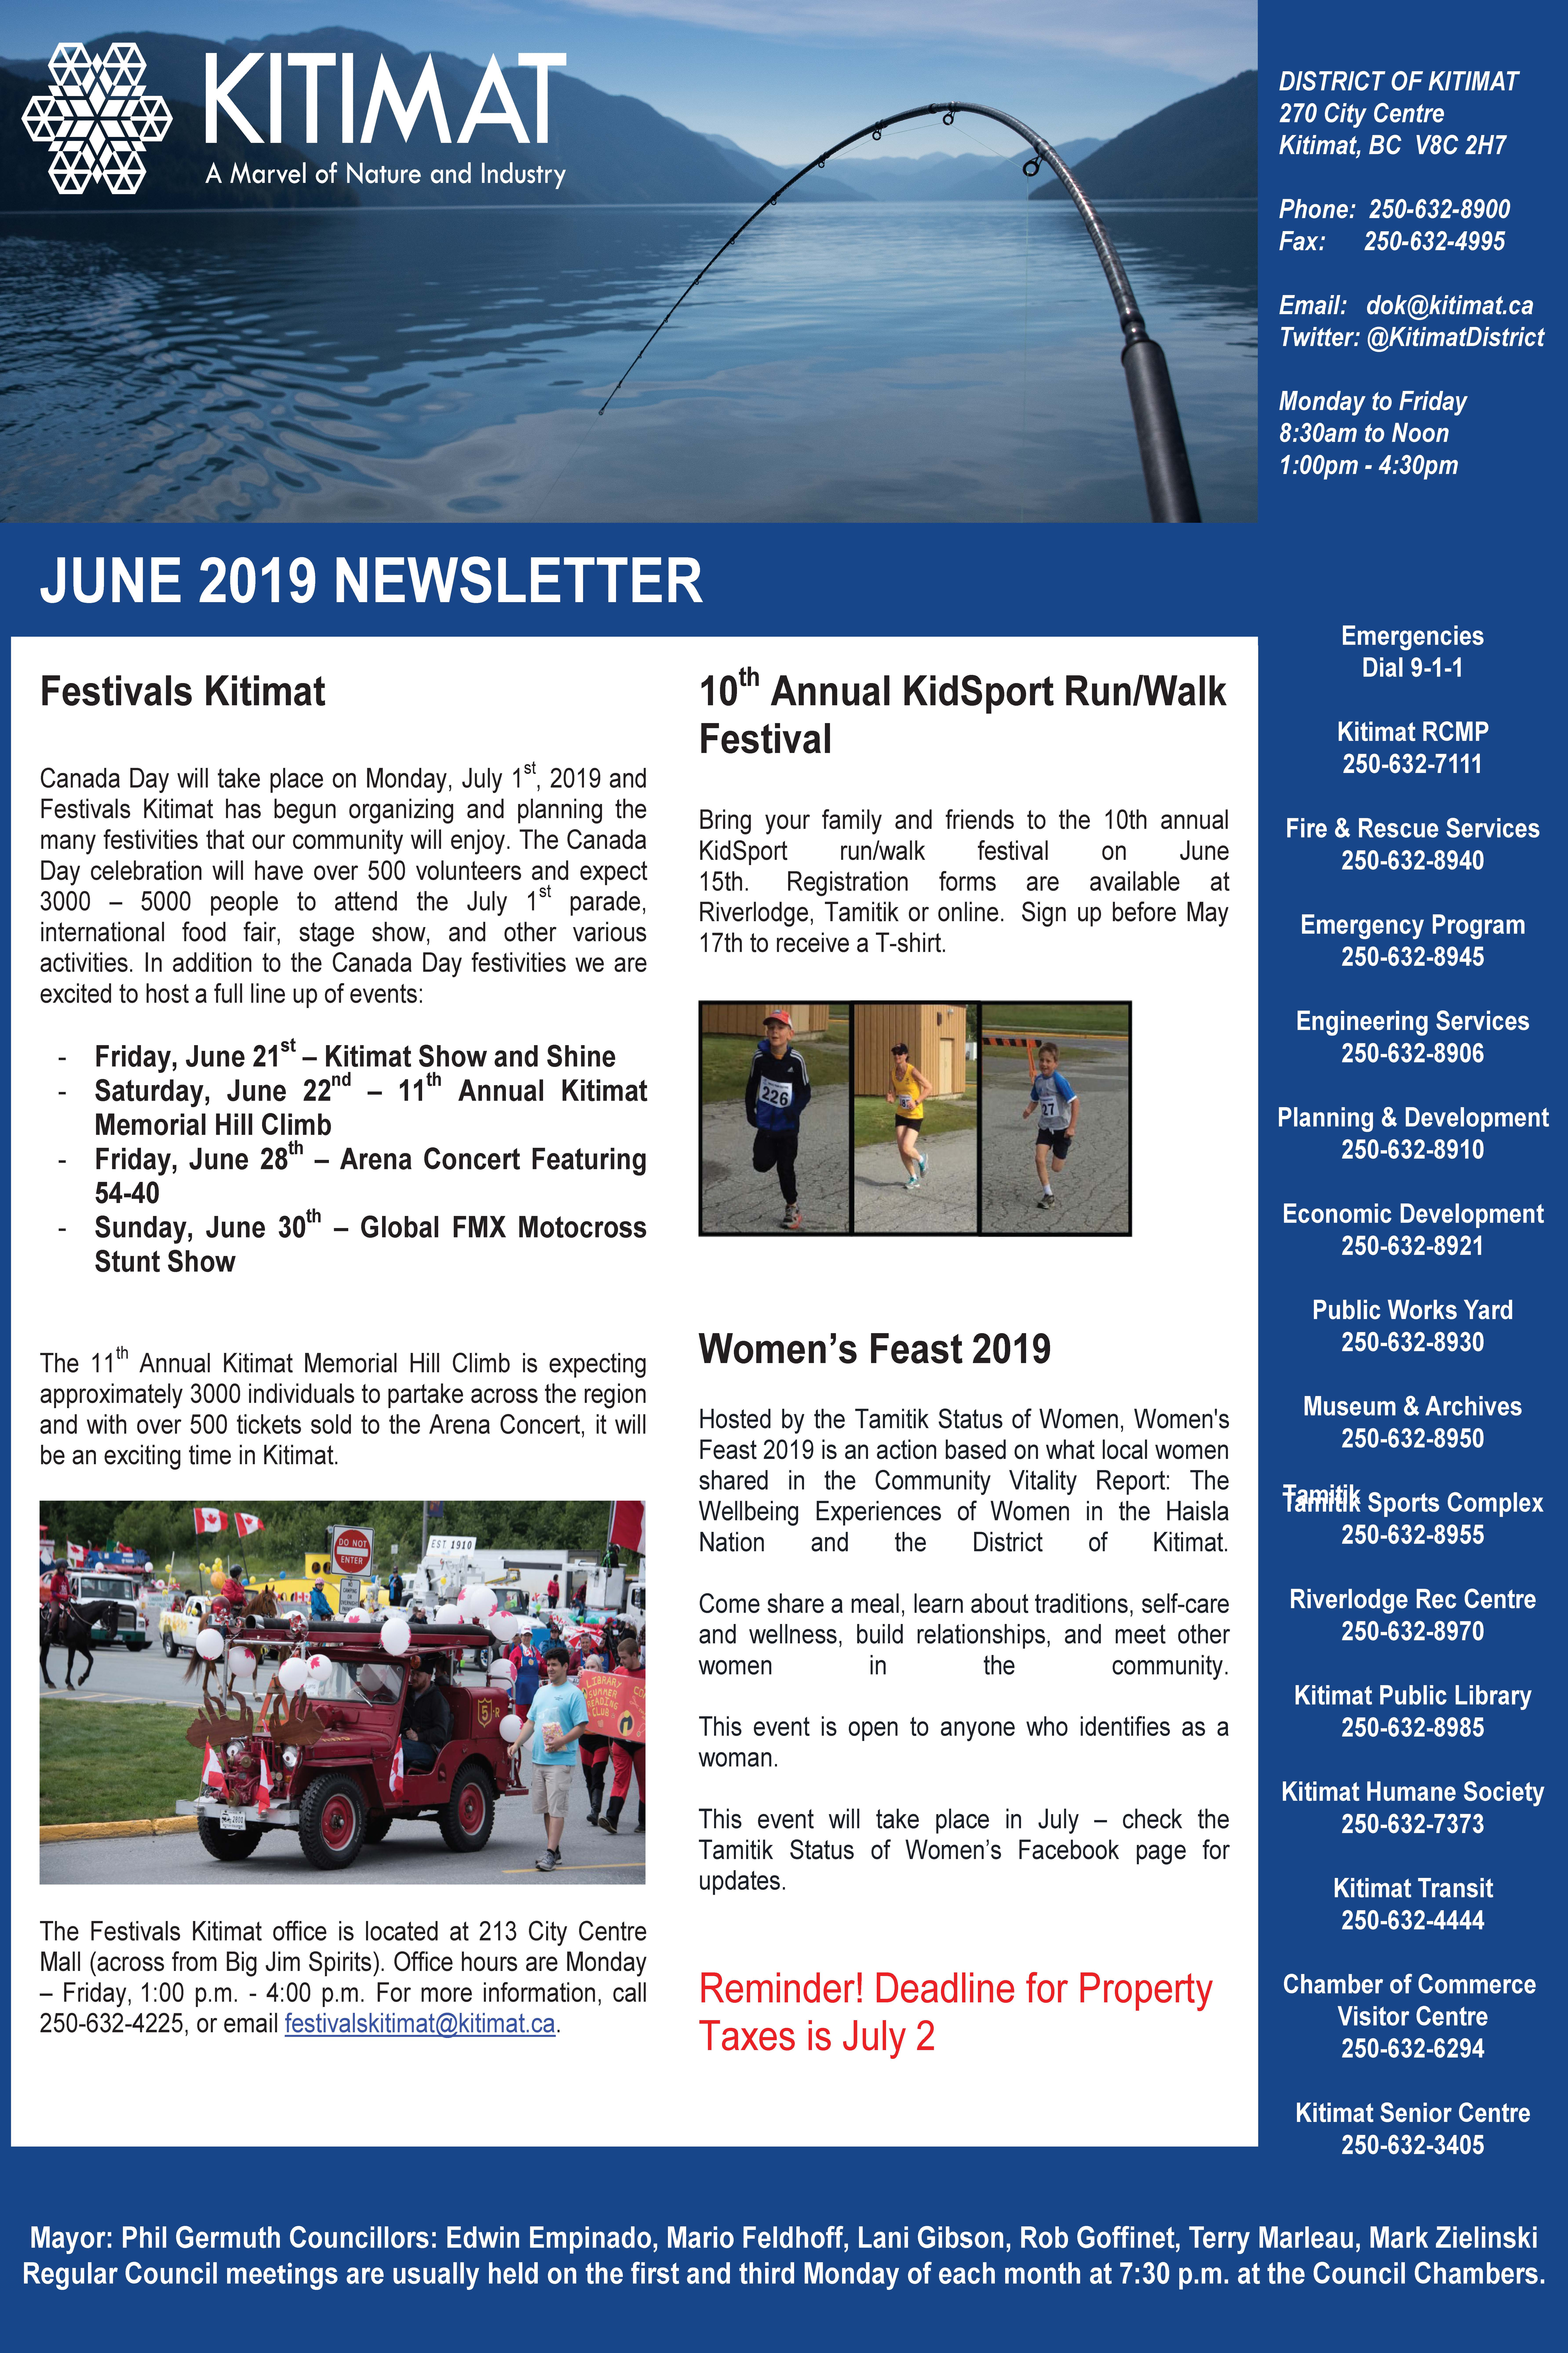 June 2019 Newsletter FINAL_Page_1